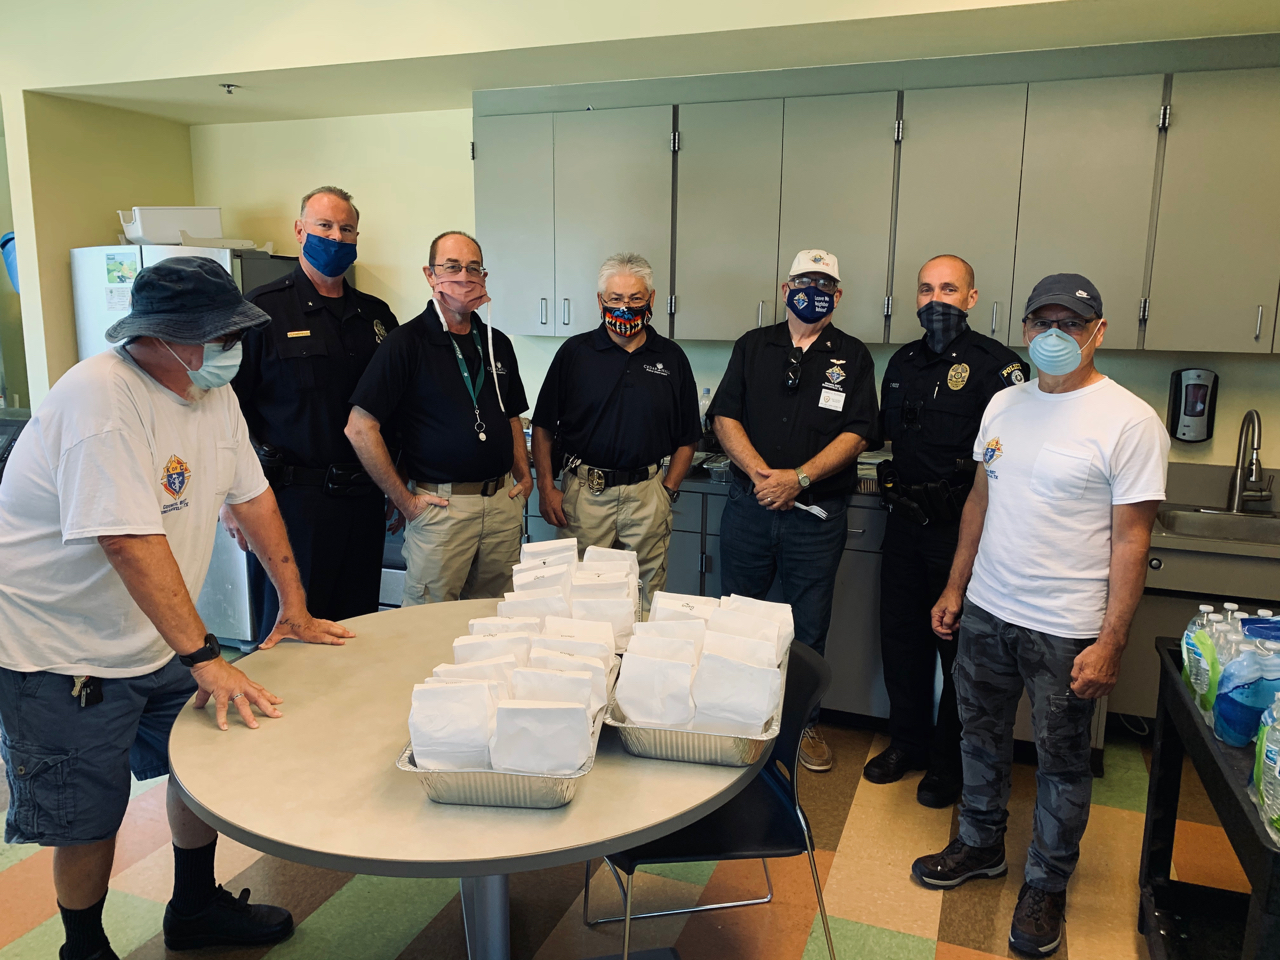 Meals for CHPD 2020 - 12 of 16